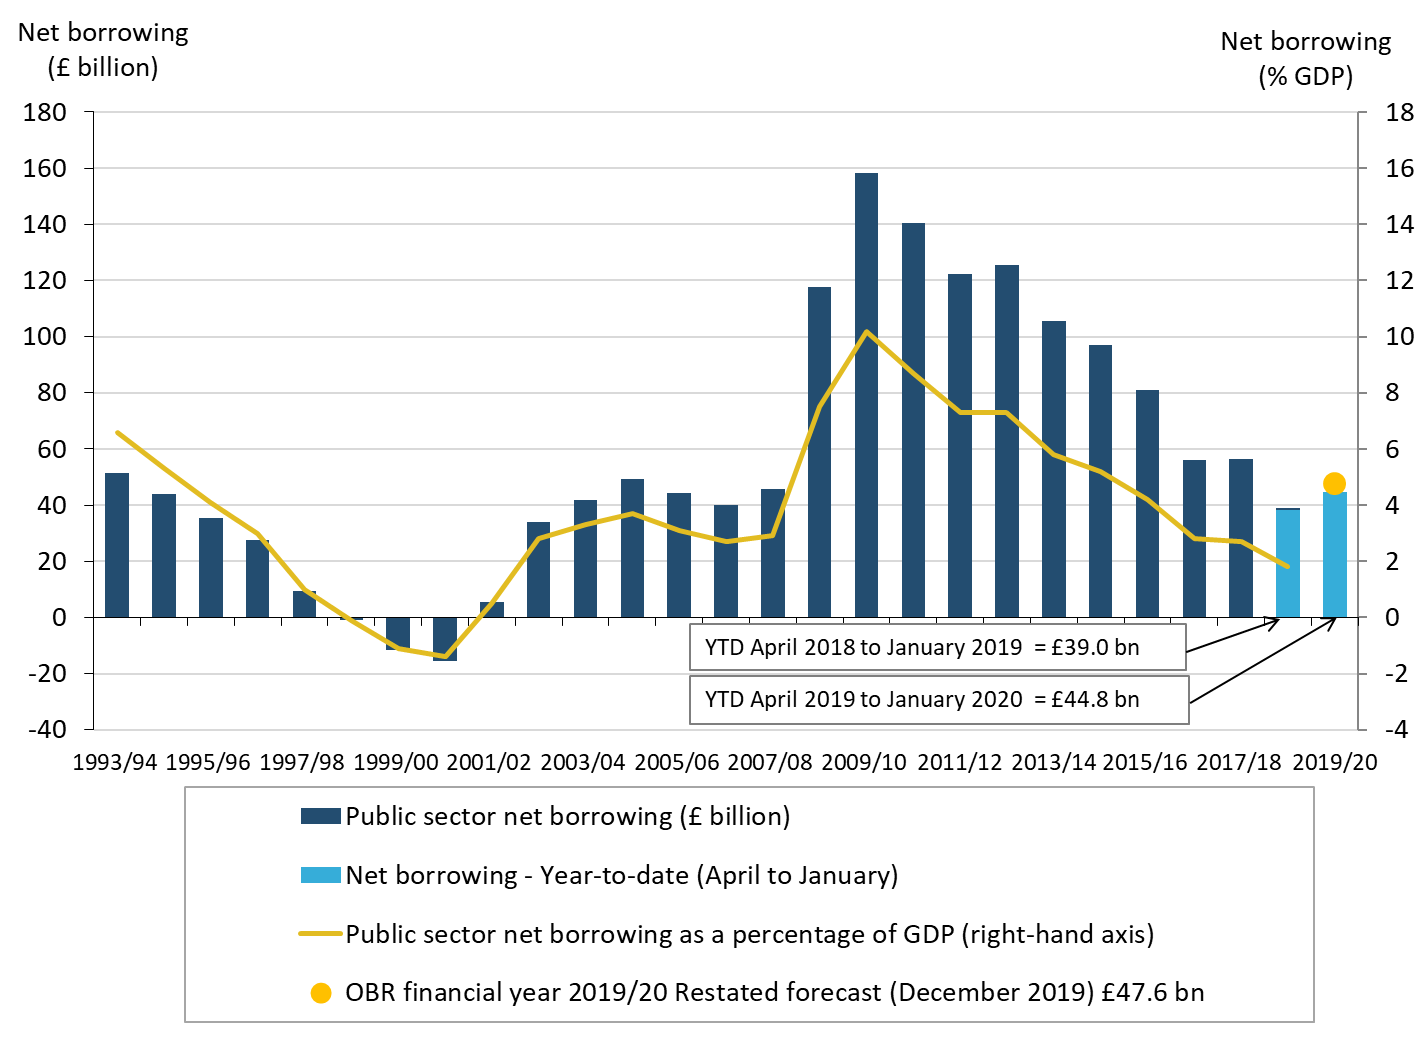 In the financial year ending March 2020, the Office for Budget Responsibility forecast borrowing to be £47.6 billion, OBR restated forecast December 2019.